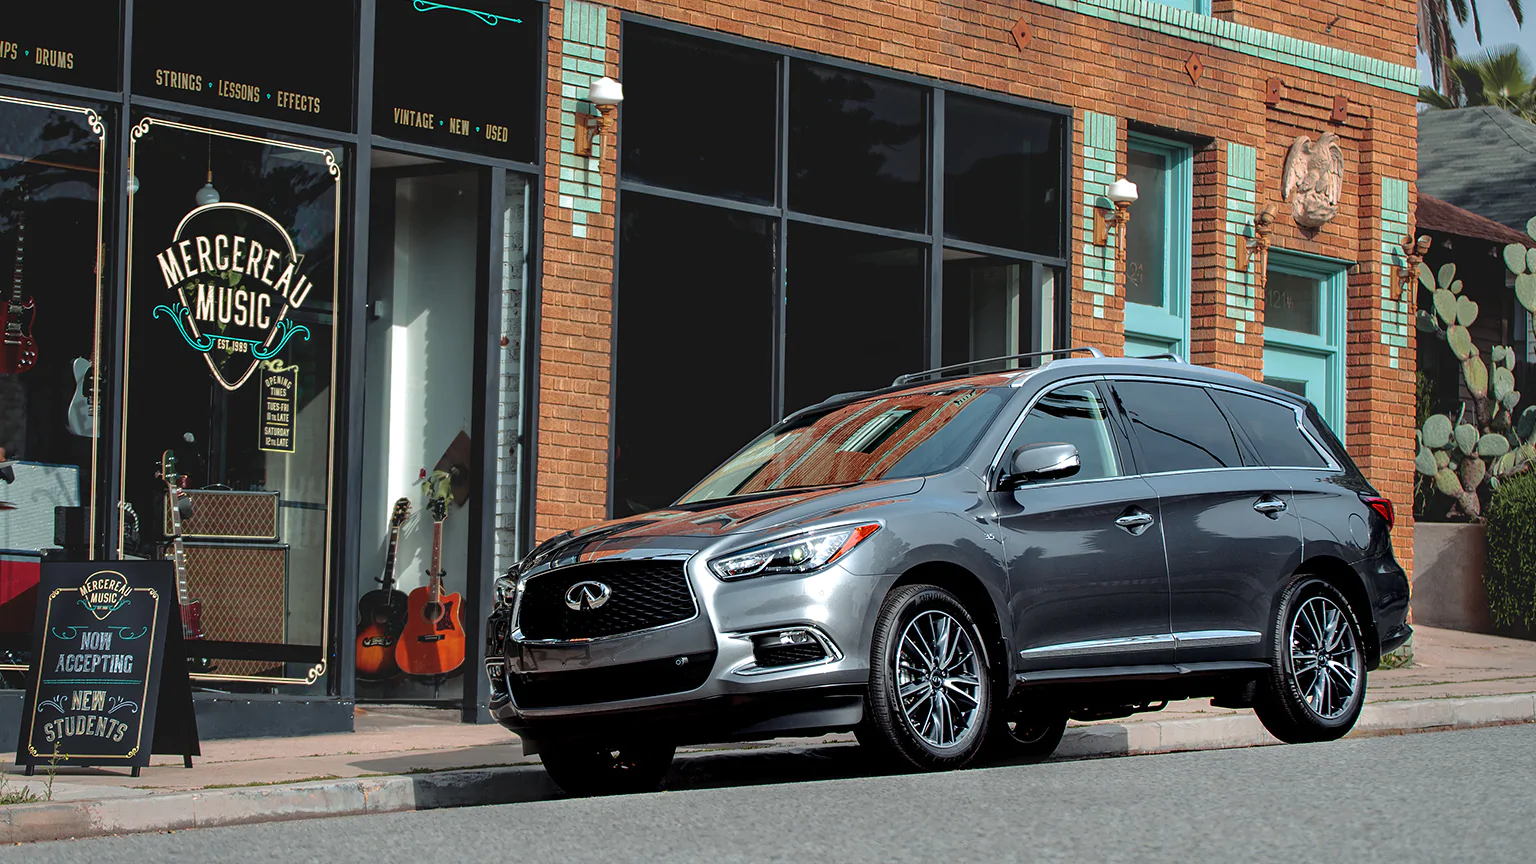 Gray 2020 INFINITI QX60 parked in front of a brick building. Available now at Kearny Mesa INFINITI.